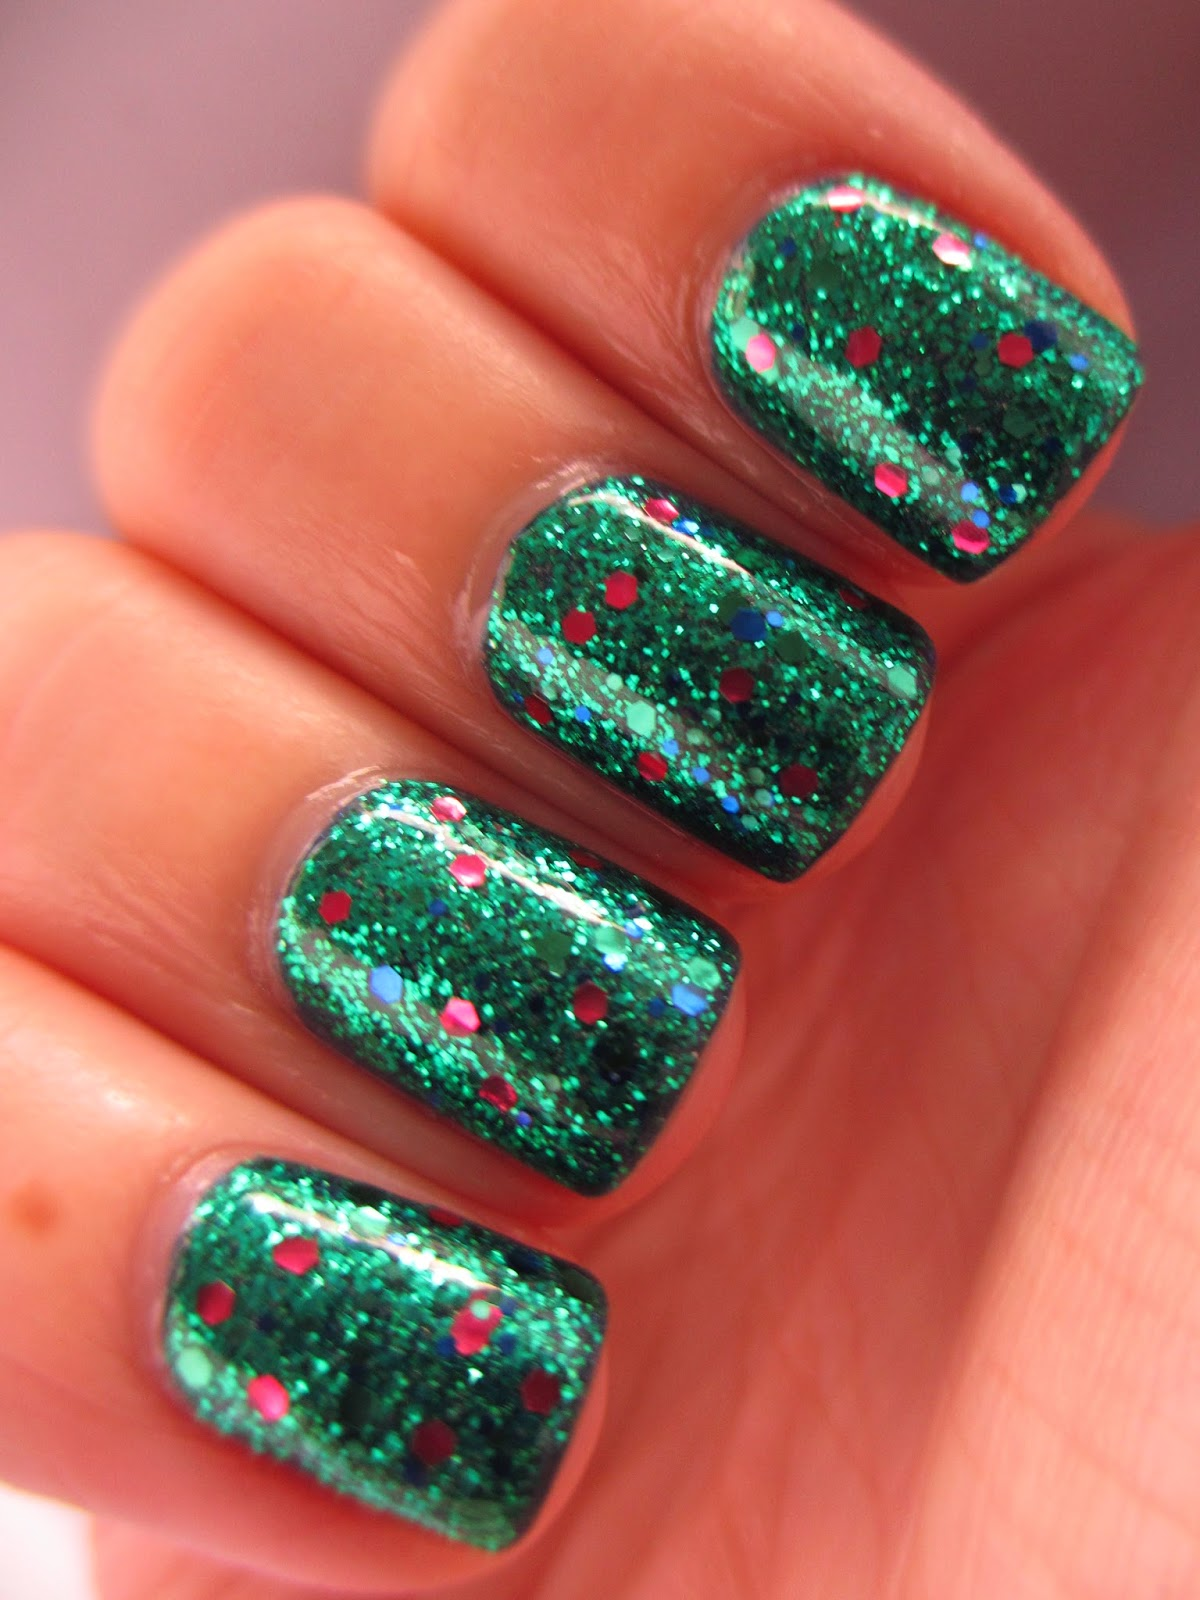 green-glitter-nail-polish-Barry-M-Posh-Polish-Mermaid-Special-Edition